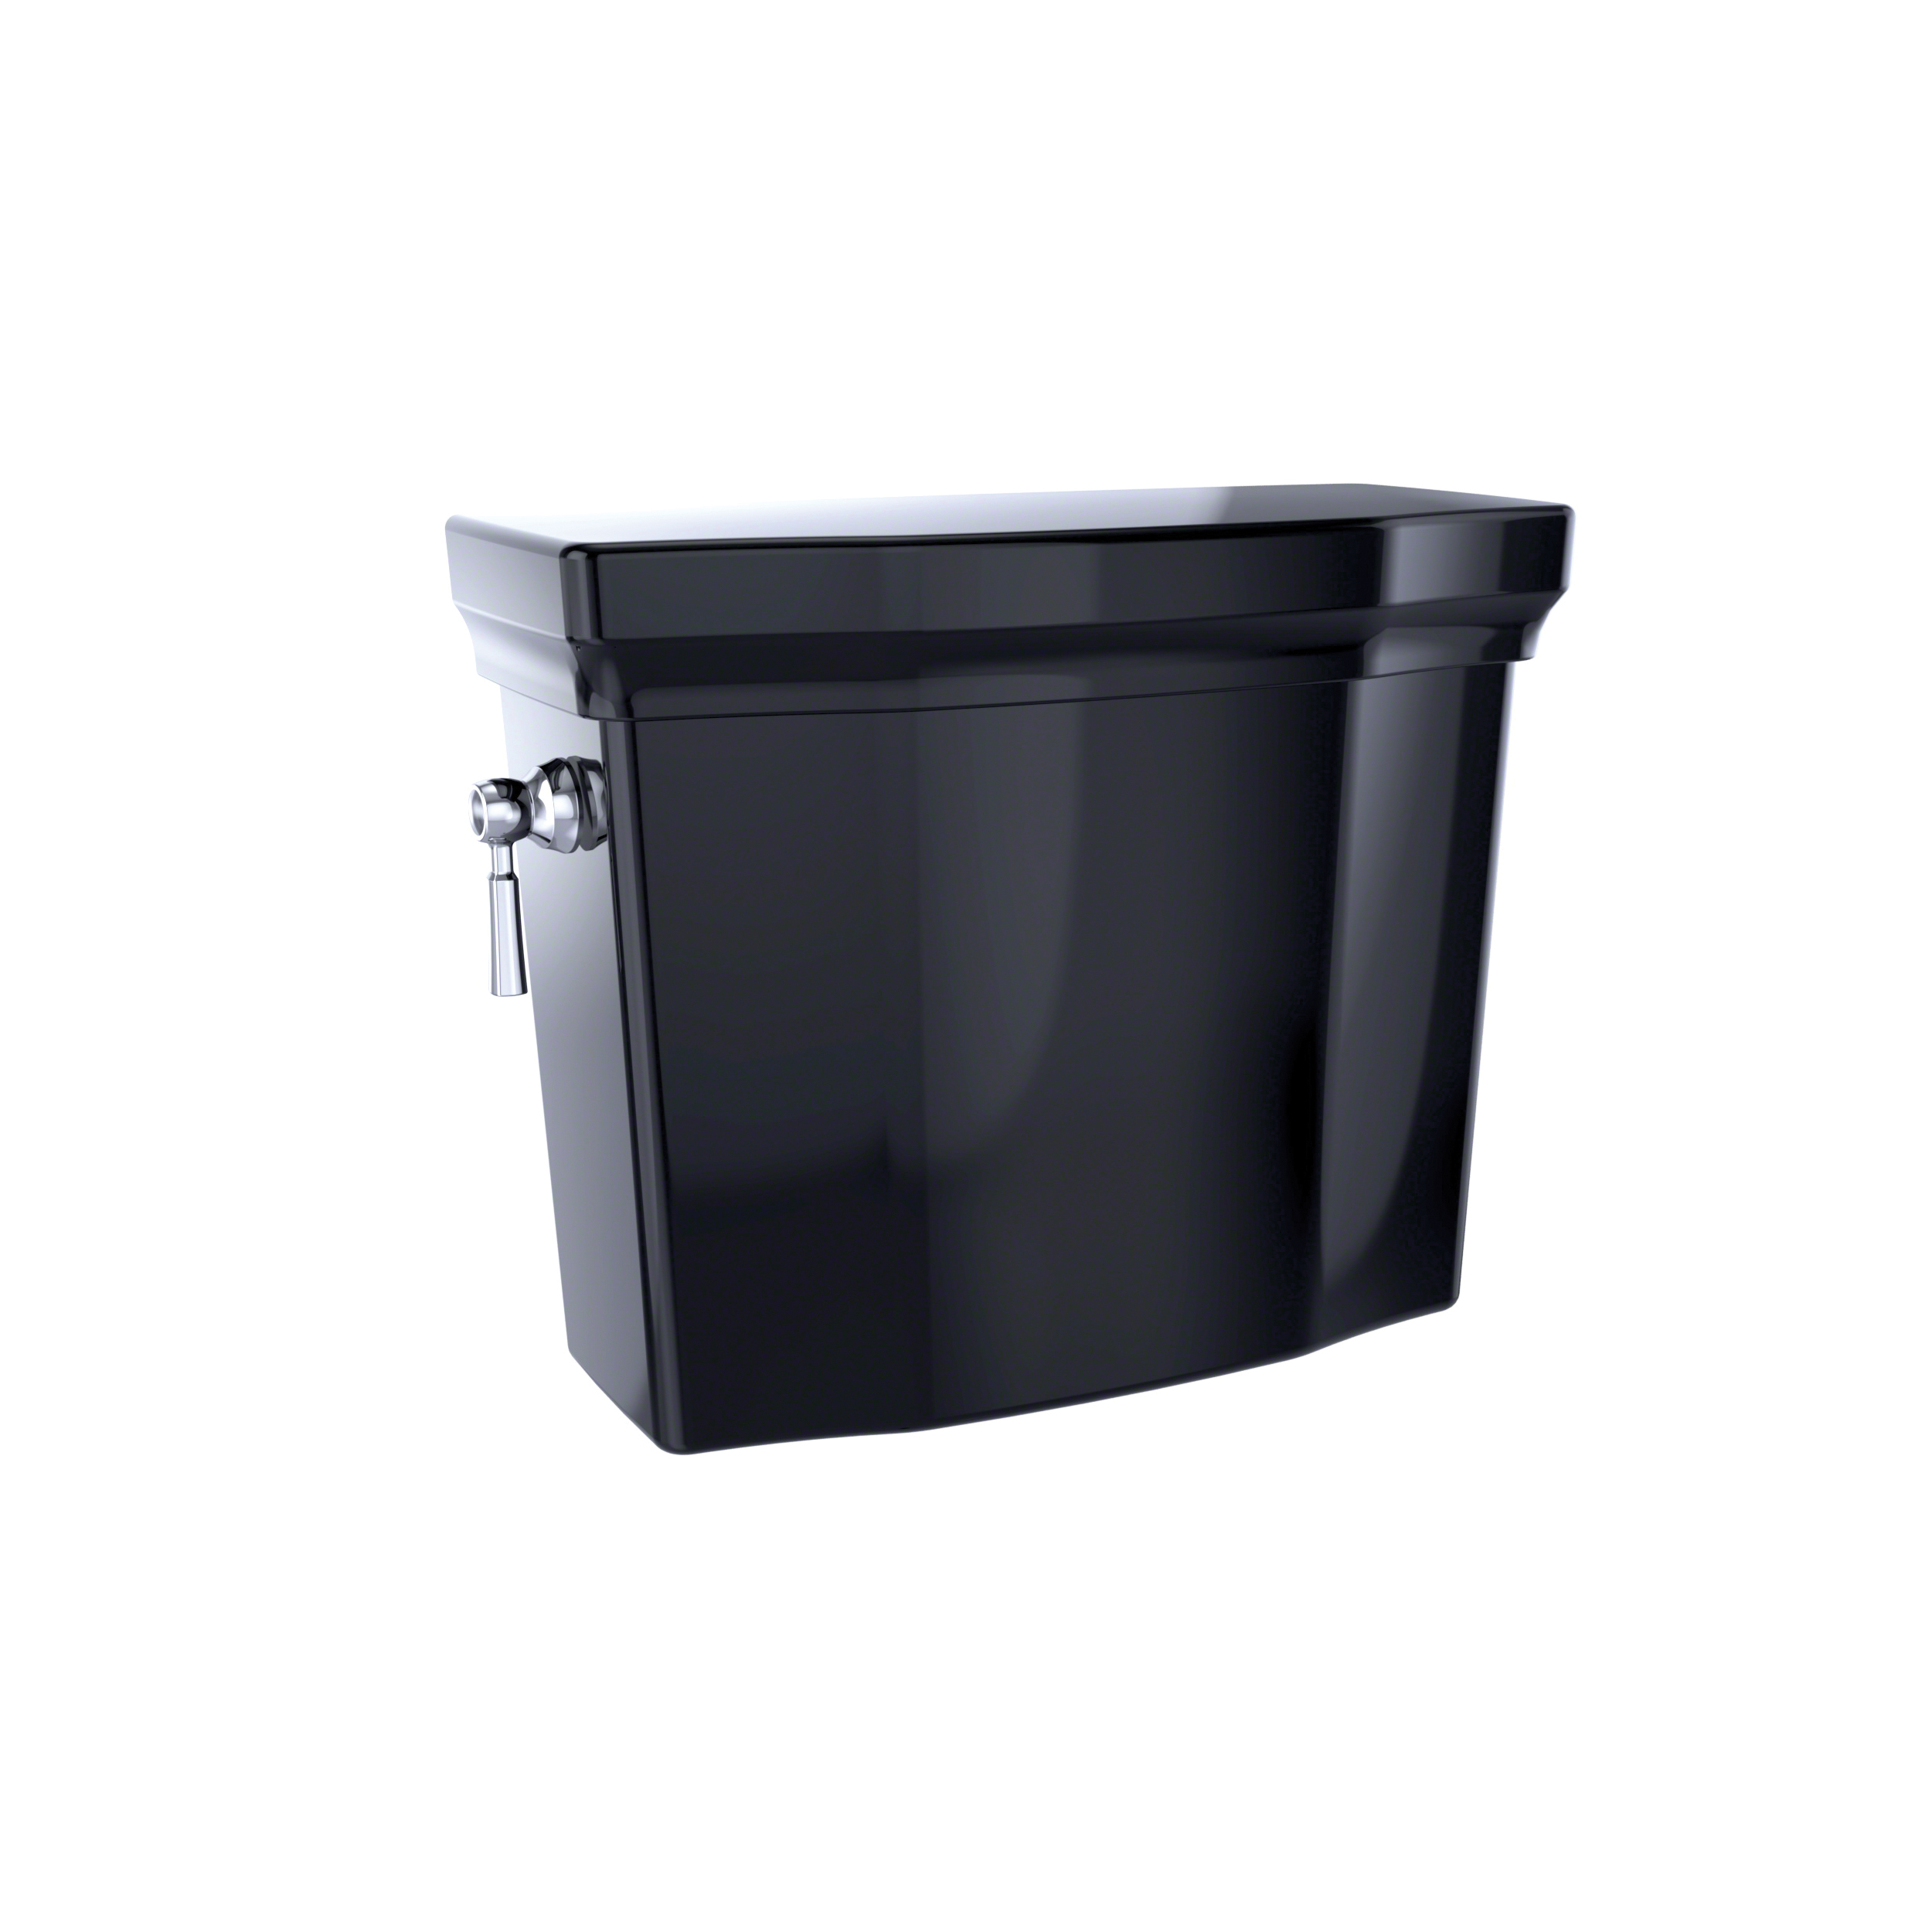 Toto® ST403U#51 Tank and Cover With Trim, 1 gpf, Left Hand Lever Flush Handle, 3 in Flush, Ebony, Domestic